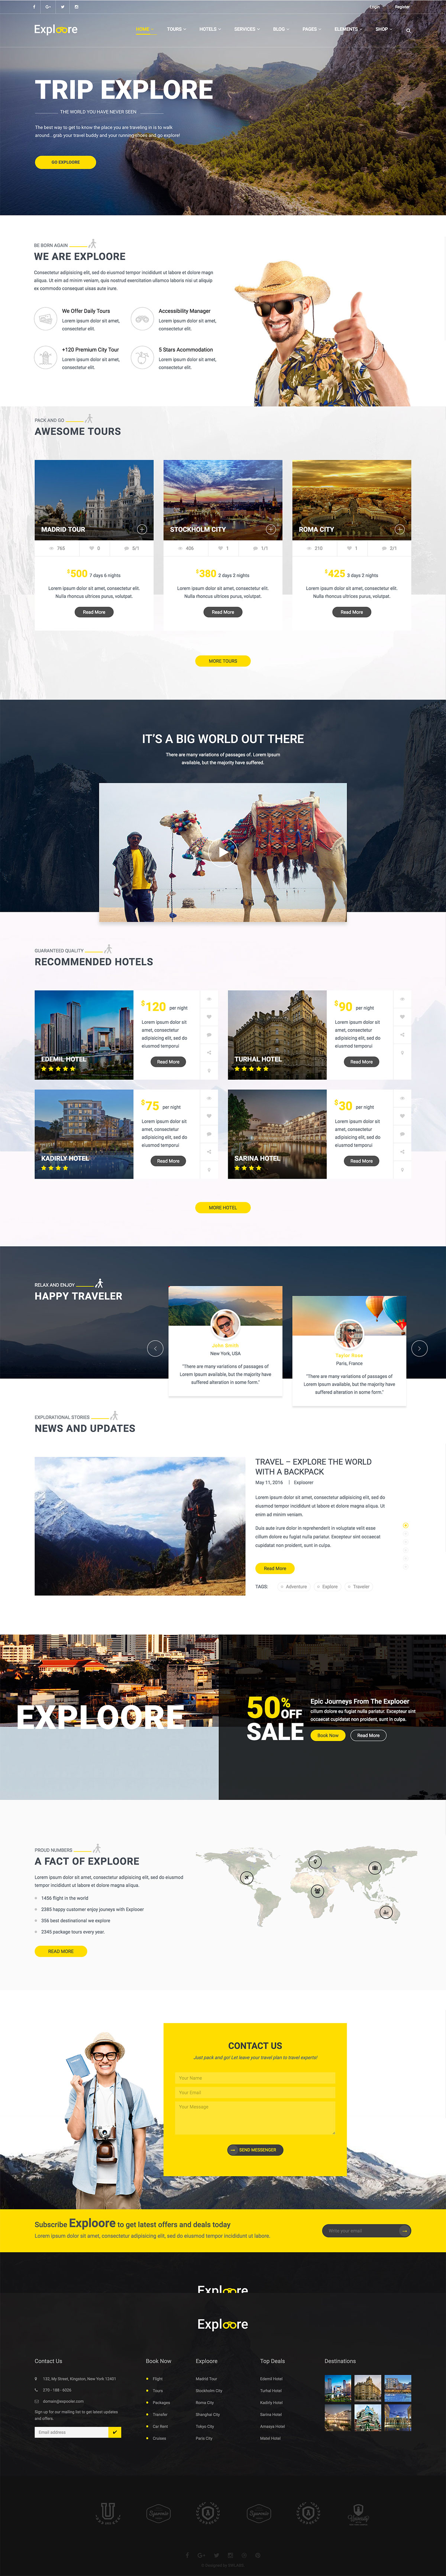 EXPLOORE - Travel, Exploration, Booking WordPress Theme